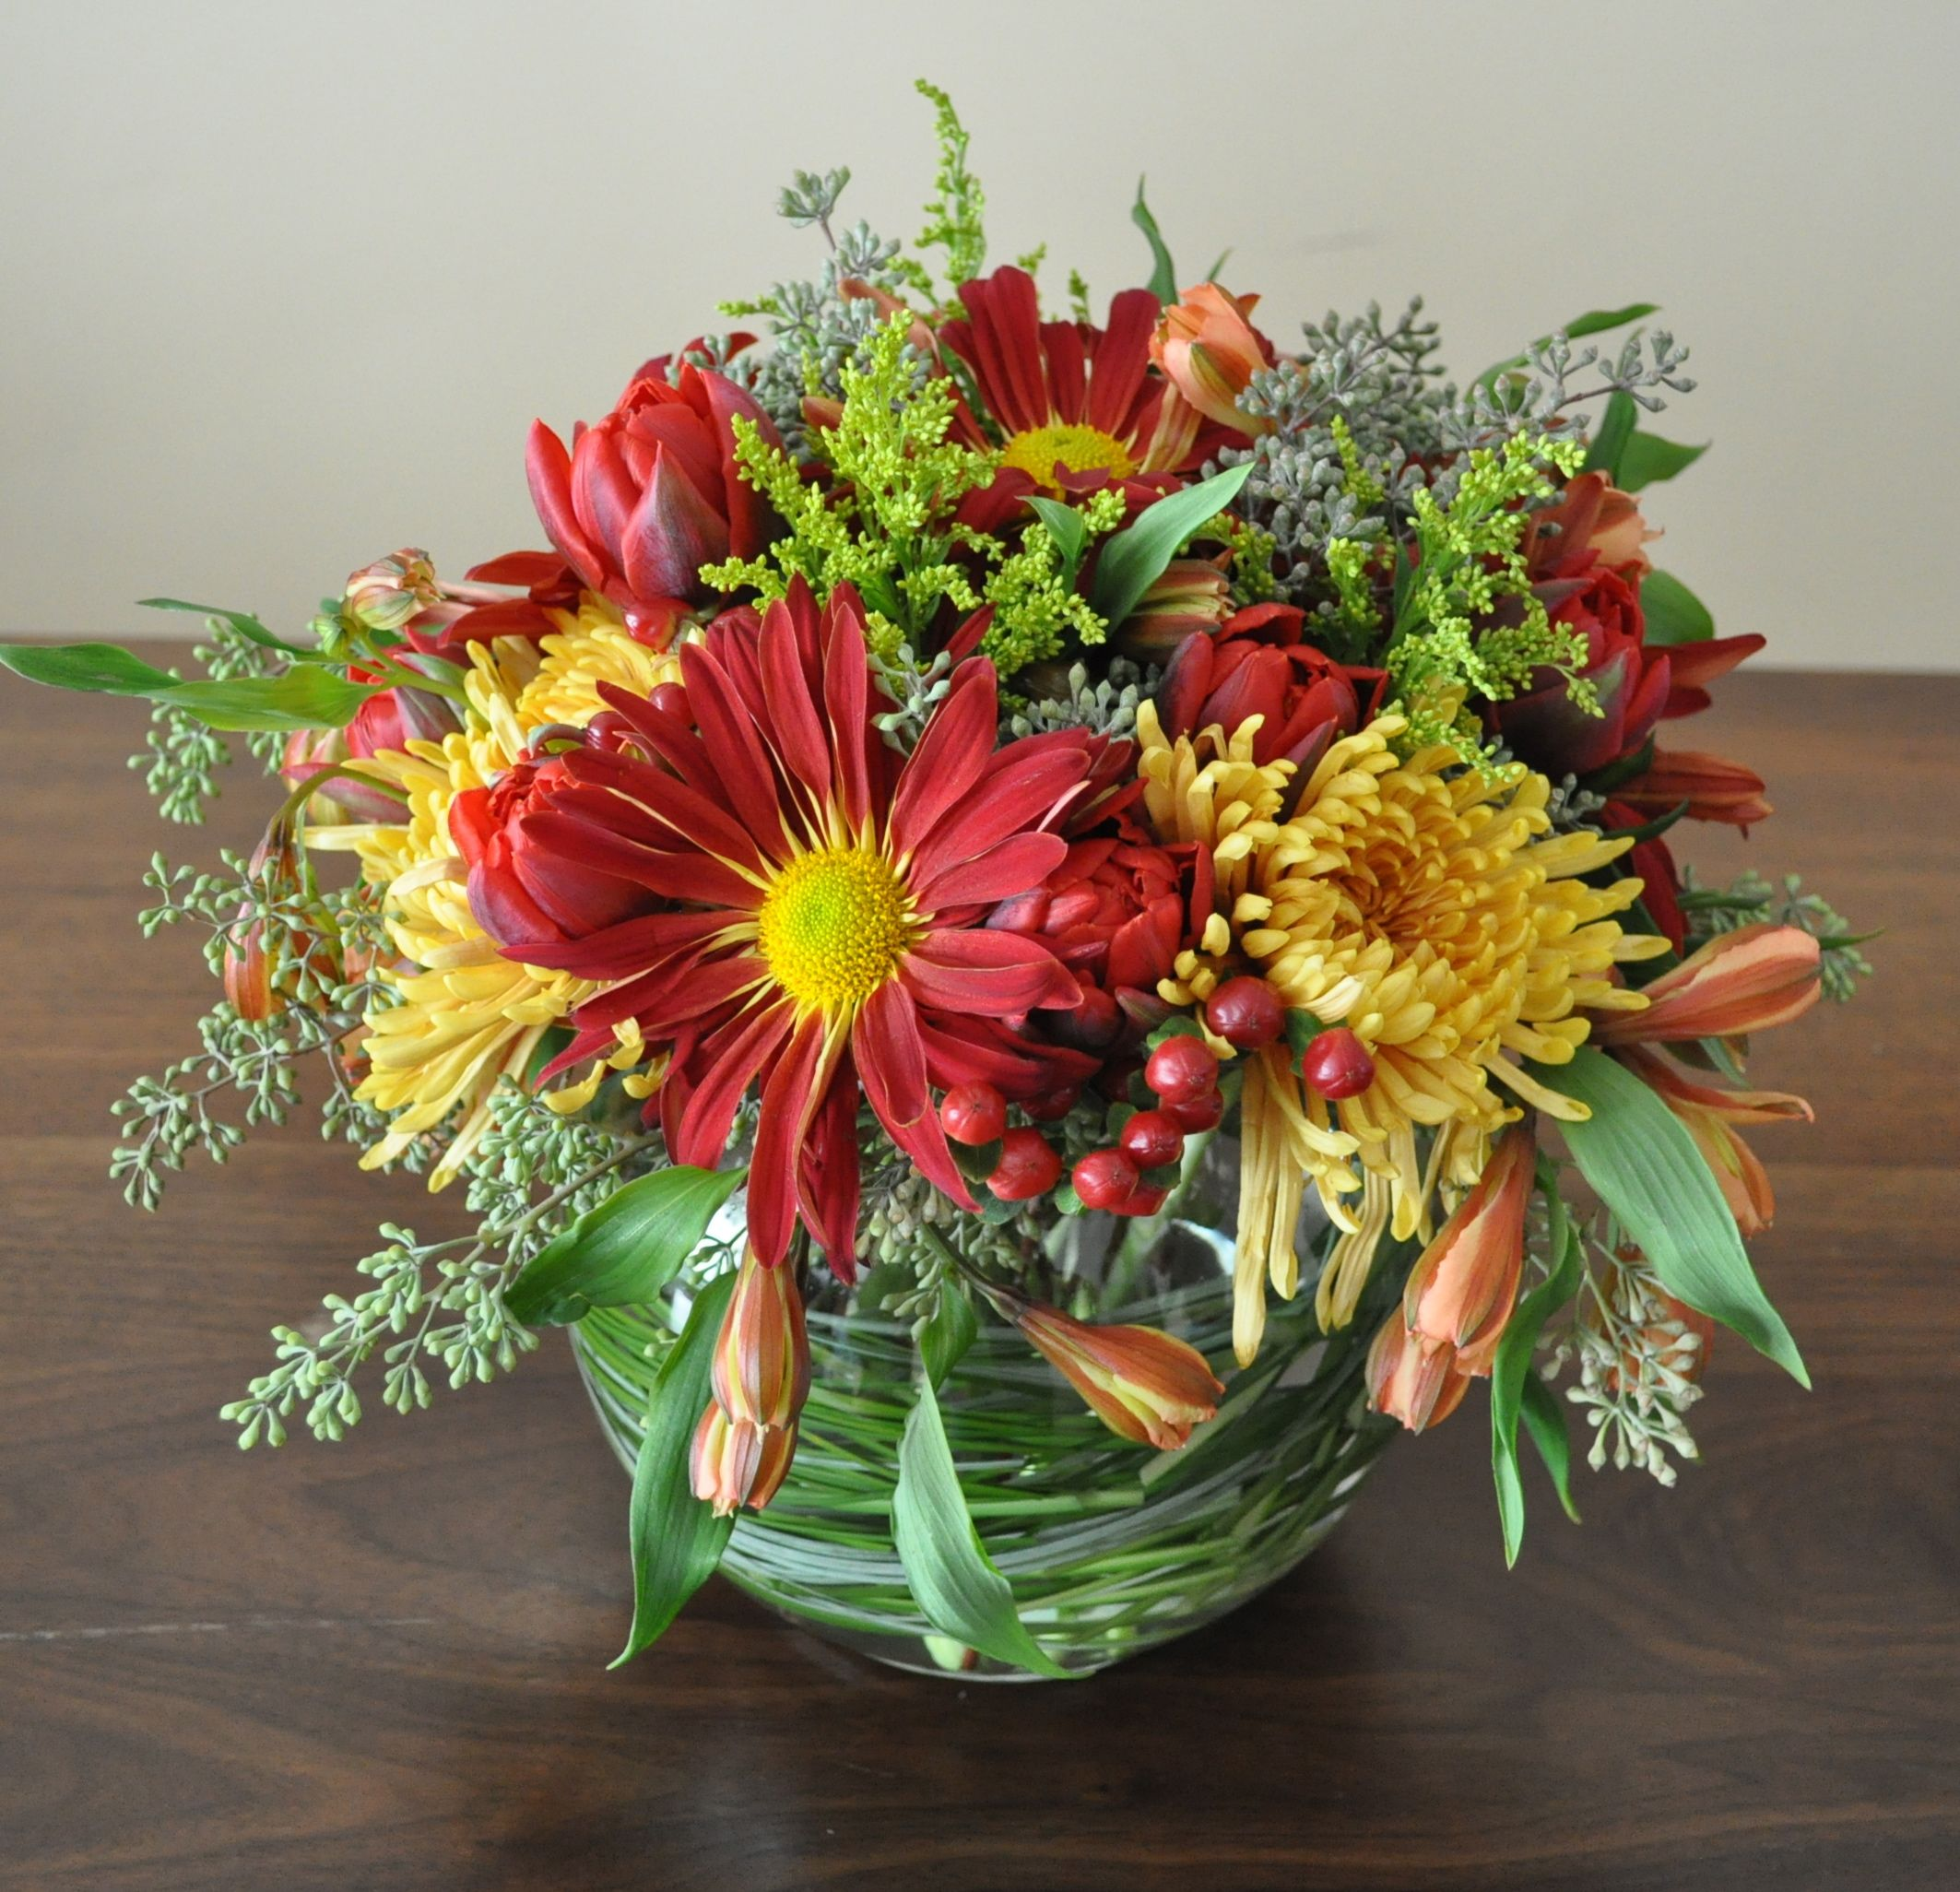 A Thanksgiving Table Flower Arrangement In Fall Colors Fresh Flowers Arrangements Fall Flower Arrangements Flower Arrangements